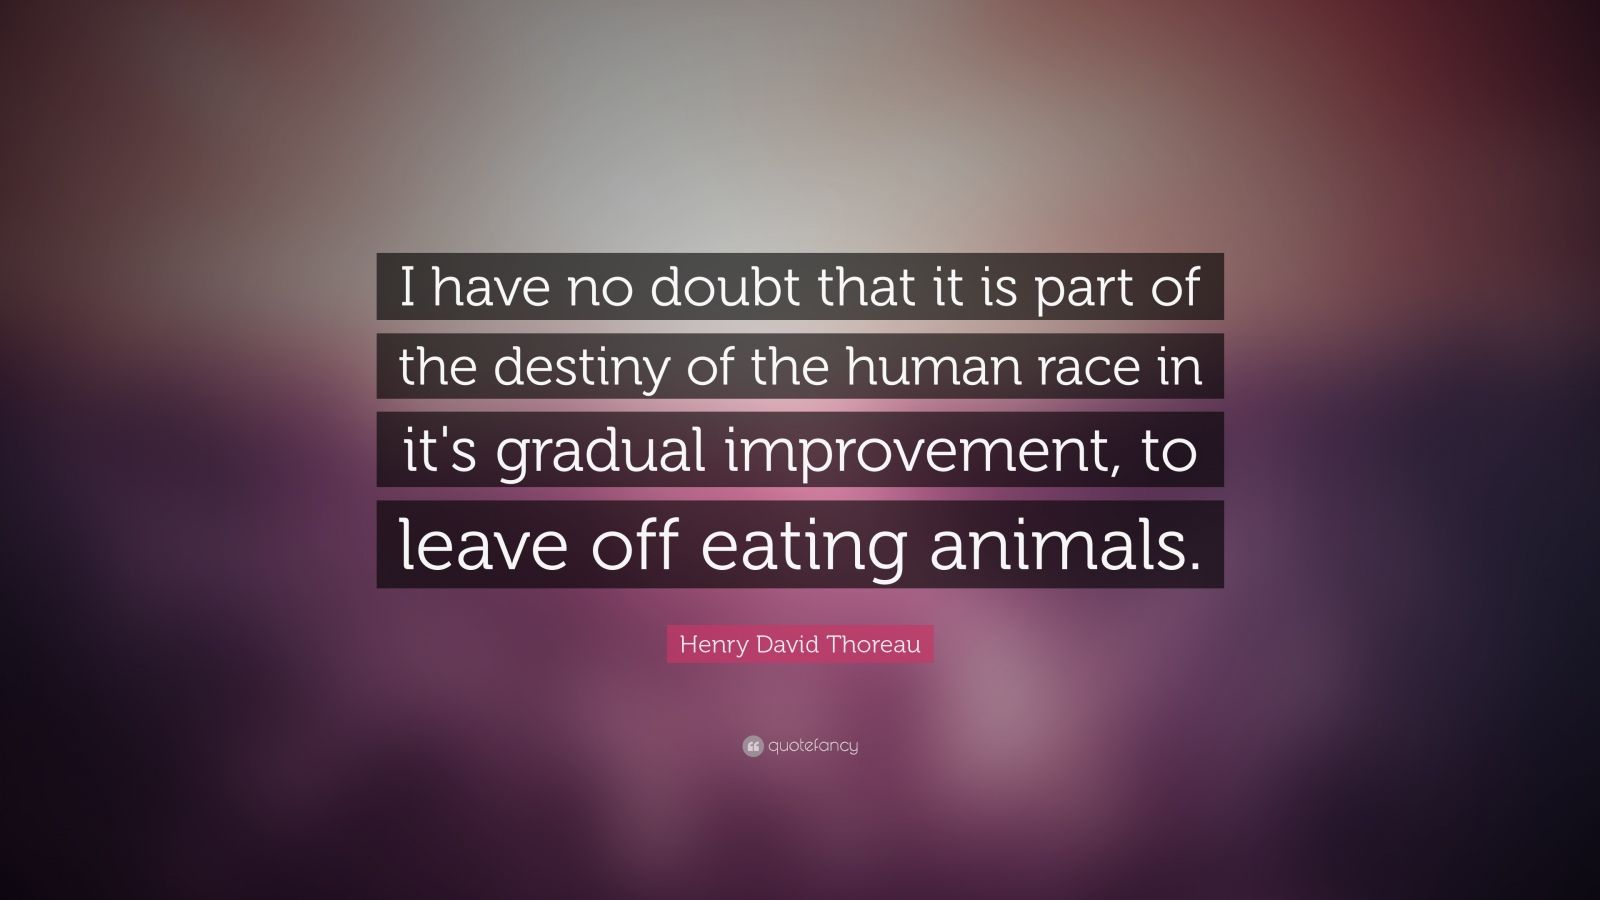 "Henry David Thoreau Quote: ""I have no doubt that it is part of the destiny of the human race in it's gradual improvement, to leave off eating animals."""